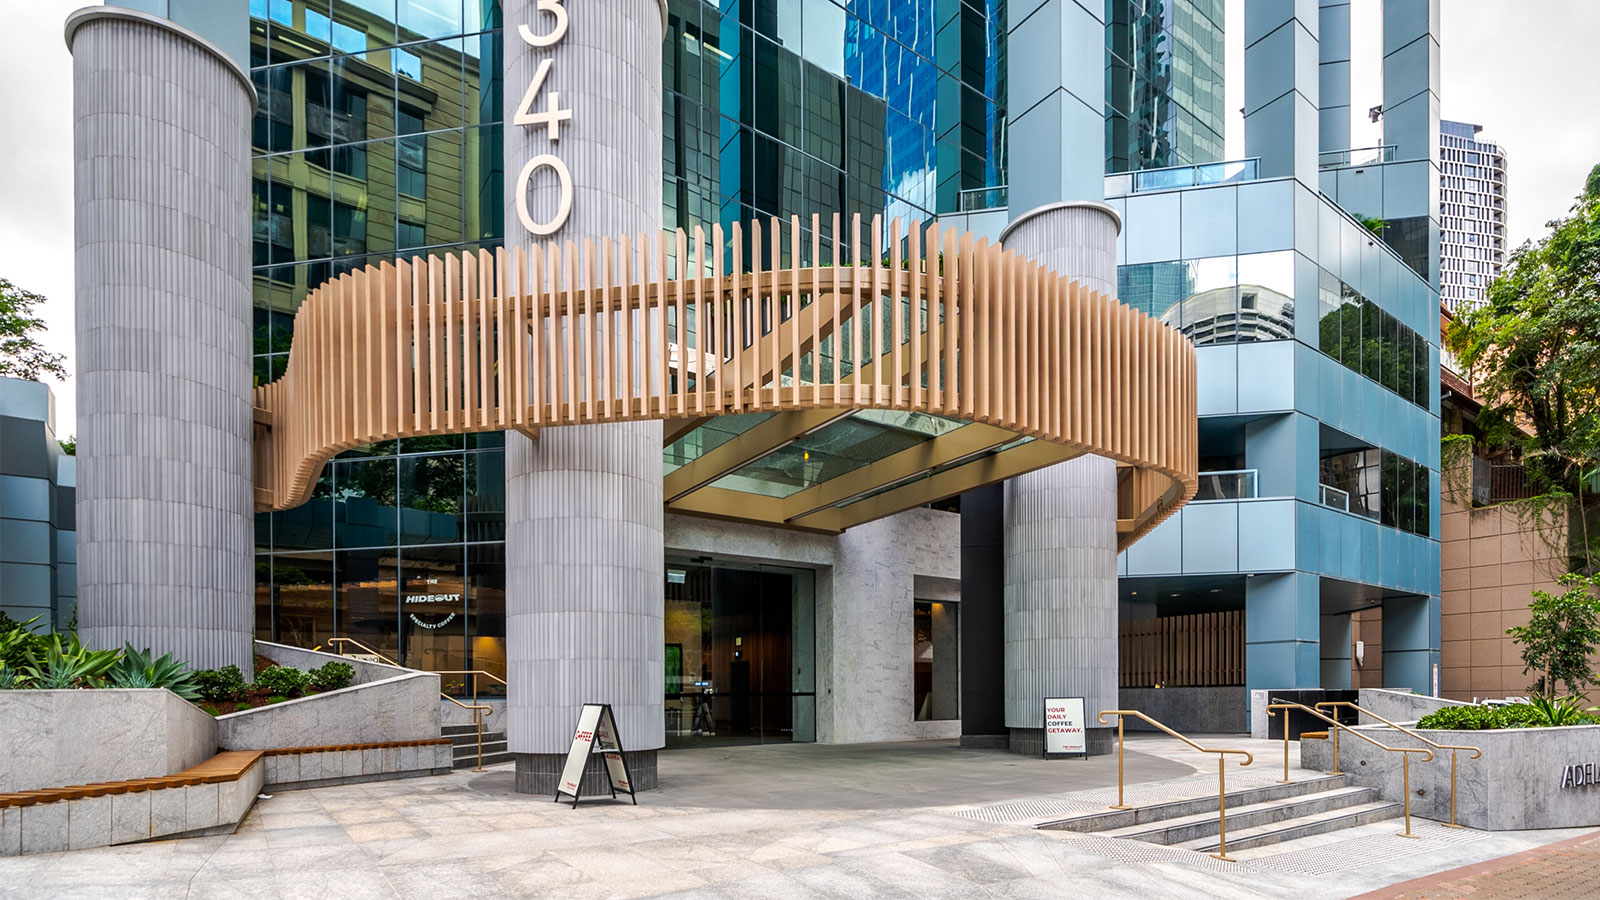 It is 93 per cent2 leased to customers including Covermore, Cerebral Palsy League and Oracle, and has a weighted average lease expiry of 3.8 years.